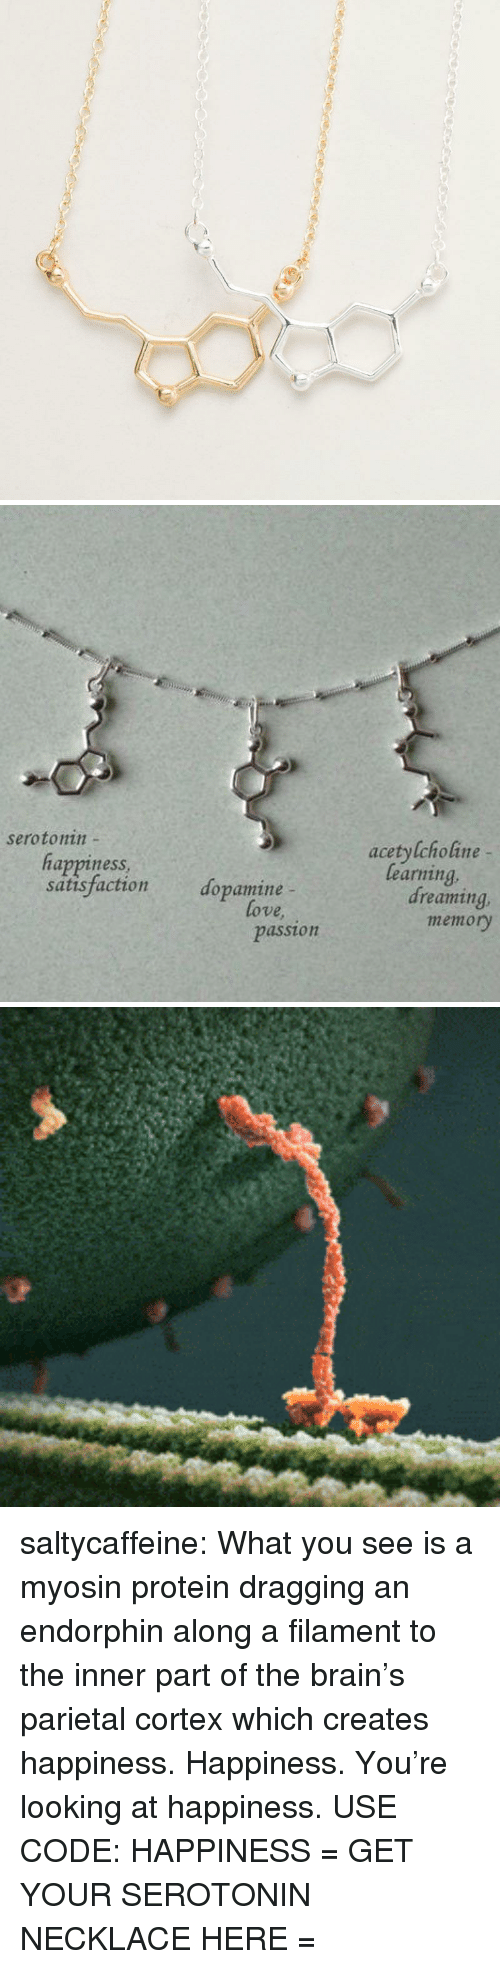 Protein, Tumblr, and Blog: serotonin  acetylcholine -  happinesS  satisfaction dopamine  learning  dreaming  ove  memory  passion saltycaffeine: What you see is a myosin protein dragging an endorphin along a filament to the inner part of the brain's parietal cortex which creates happiness. Happiness. You're looking at happiness. USE CODE: HAPPINESS = GET YOUR SEROTONIN NECKLACE HERE =